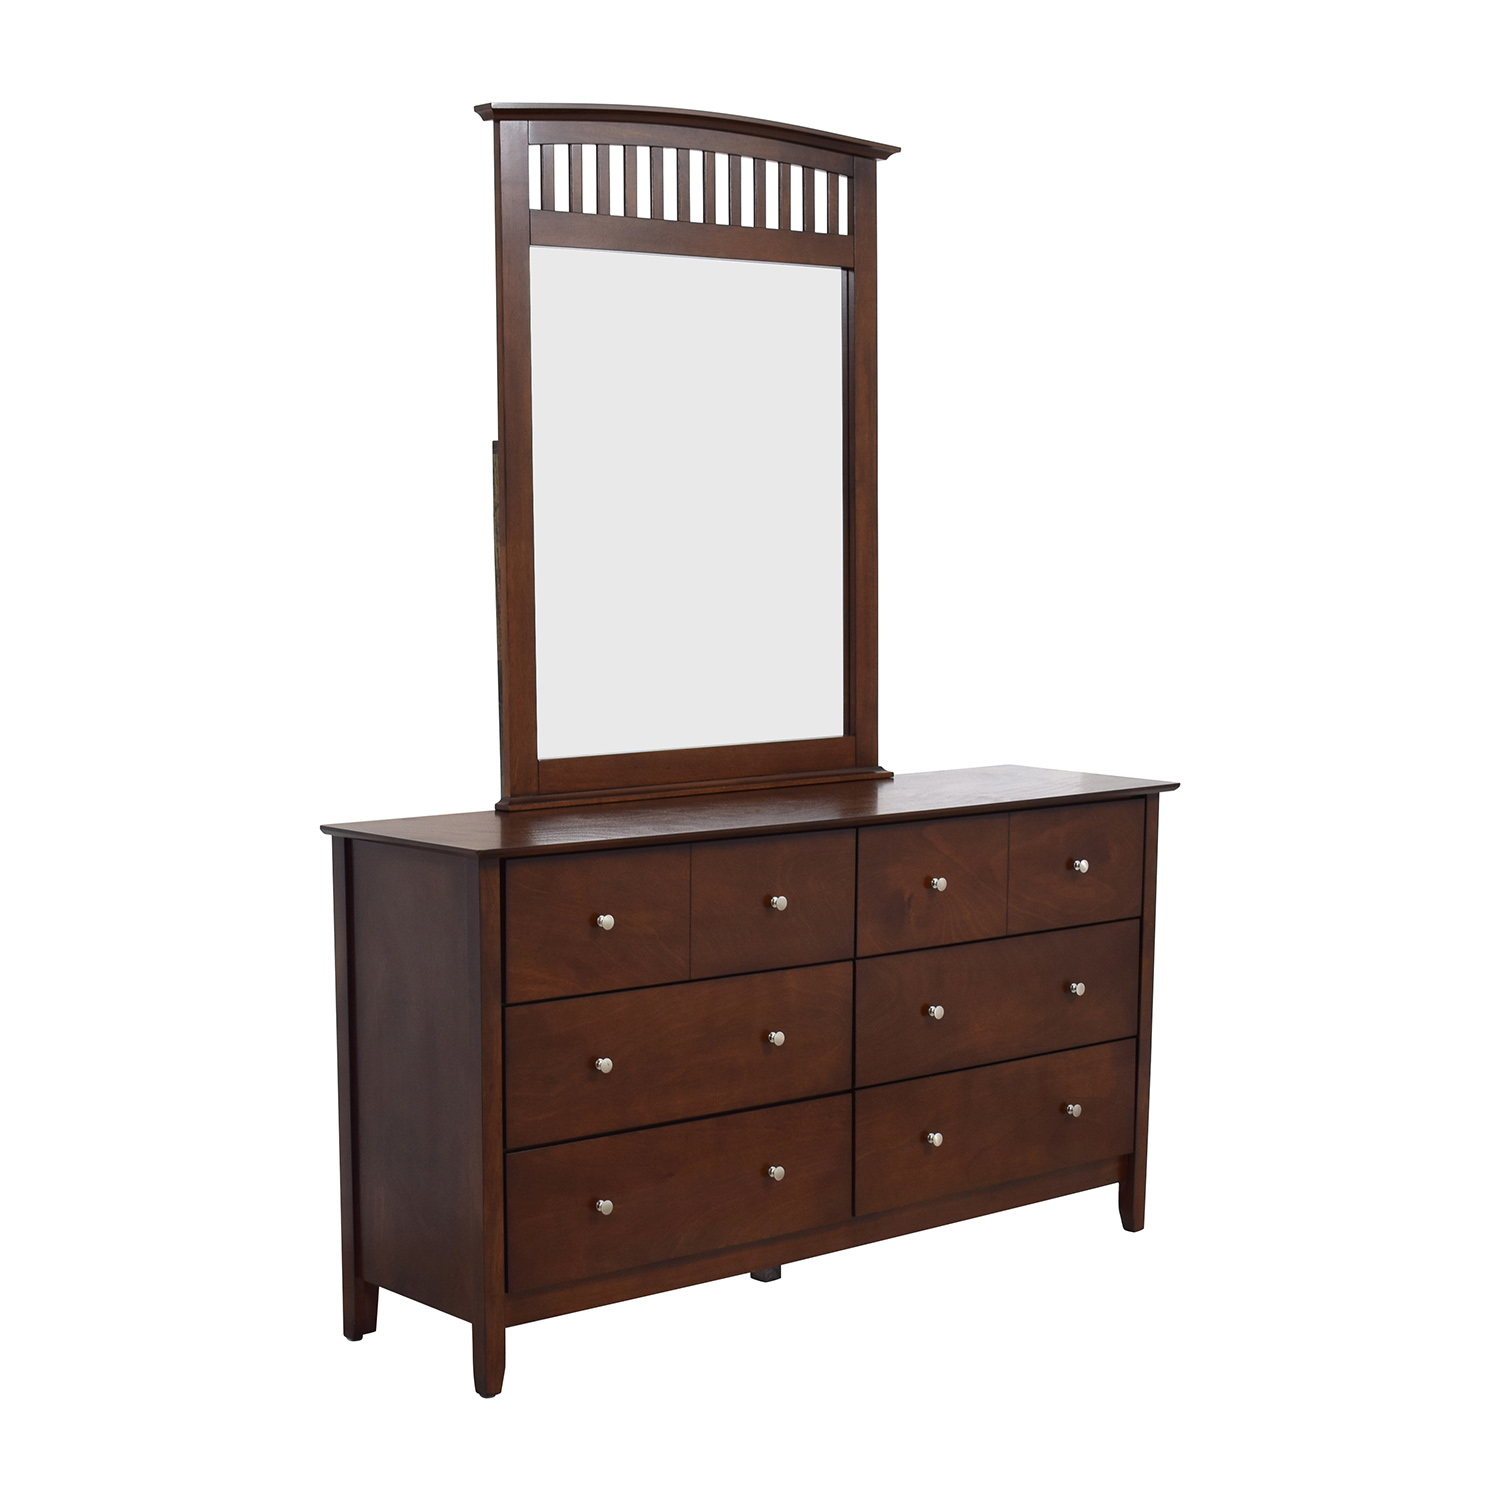 63 Off Bob 39 S Furniture Bob 39 S Furniture Eight Drawer Dresser And Mirror Storage